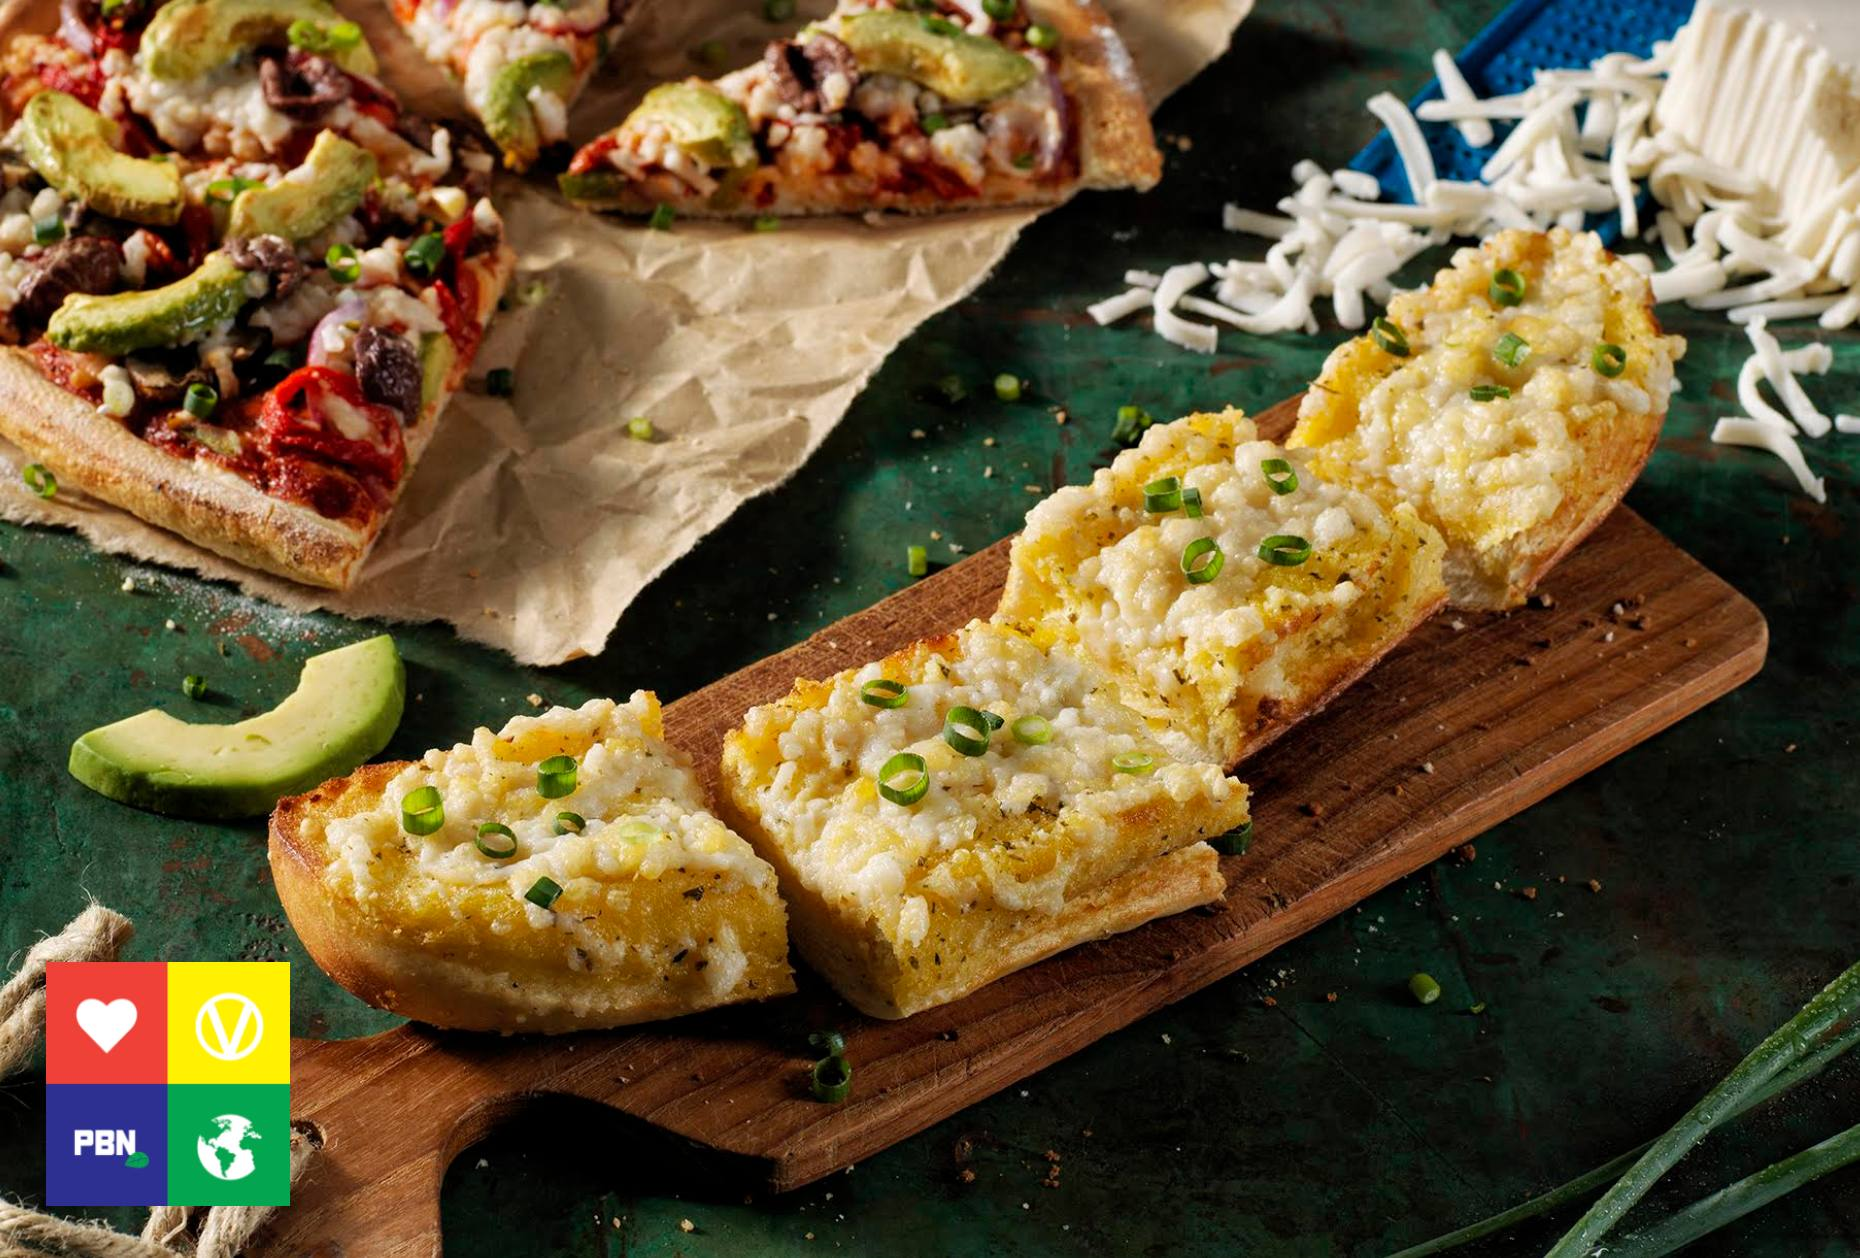 Vegan cheesy garlic bread from Domino's Pizza